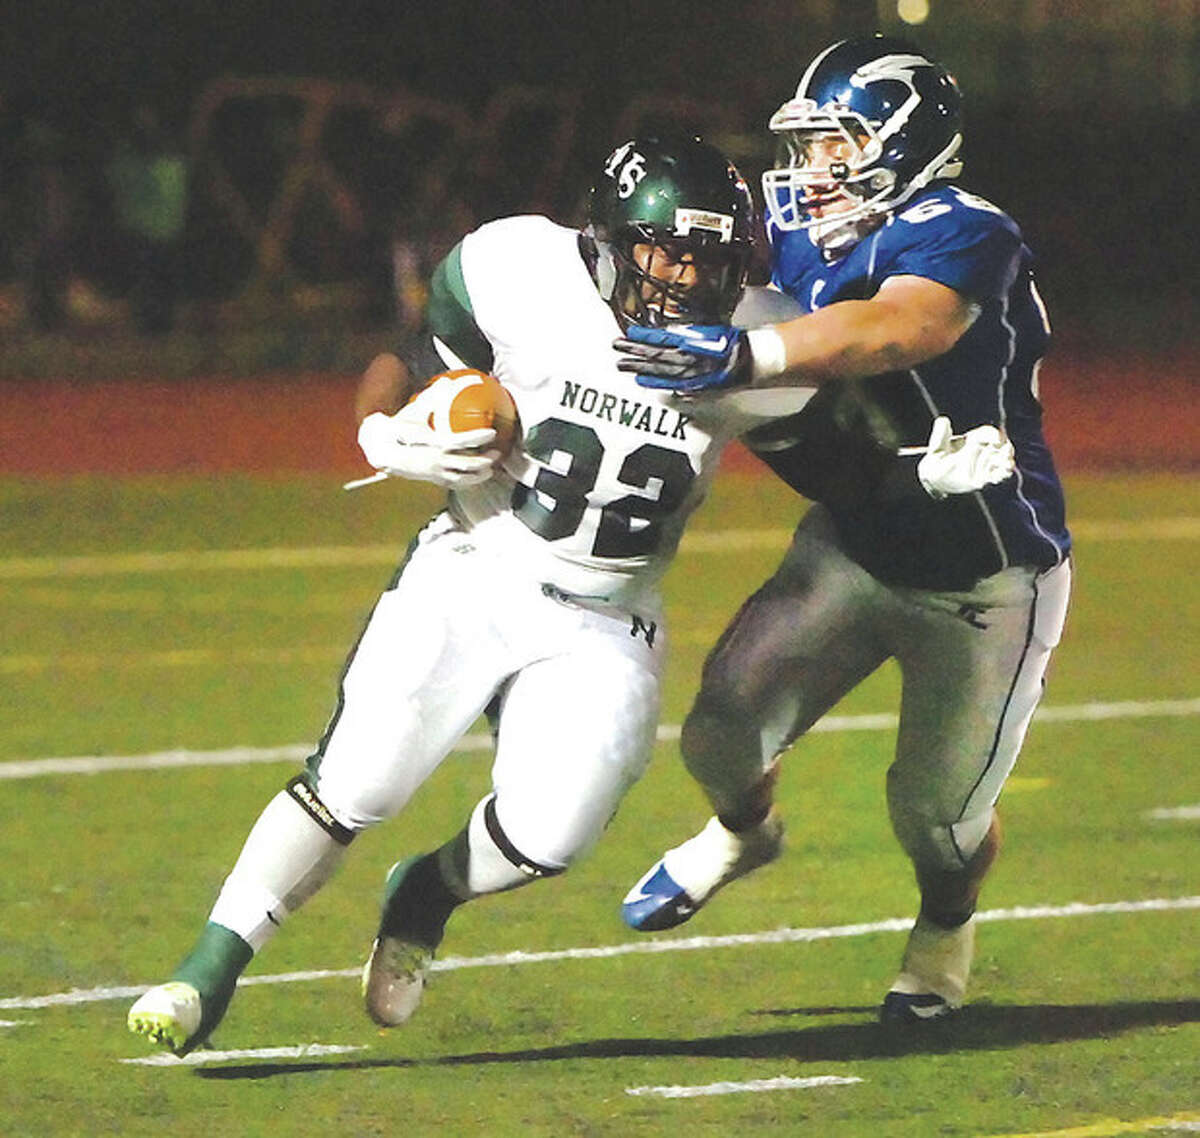 Hour Photo/Alex von Kleydorff Norwalk's Tomar Joseph, left, tries to fend off the tackle of Fairfield Ludlowe's Jake Garrell during Thursday night's FCIAC football game at Taft Field. Ludlowe won the game, 21-20 in overtime.